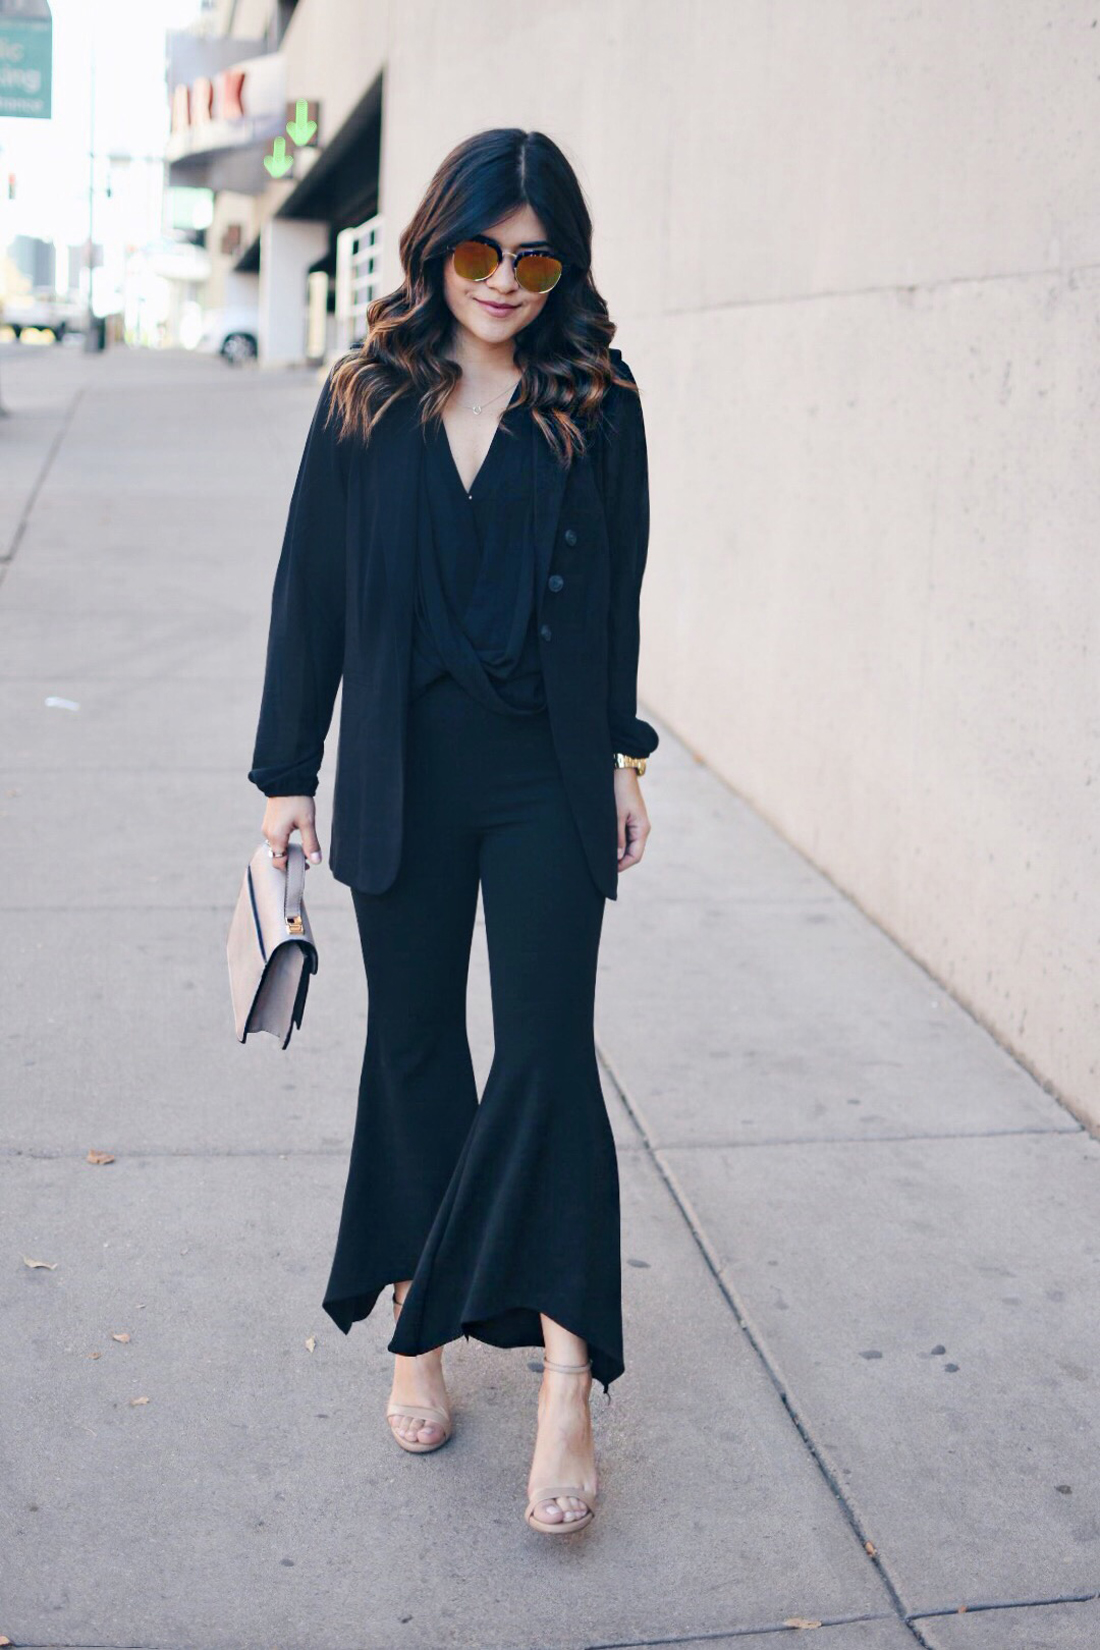 Carolina Hellal of Chic Talk wearing a Forever21 chiffon top, SheIn cropped bell bottom pants, Kensie black vest and Steve Madden nude sandals